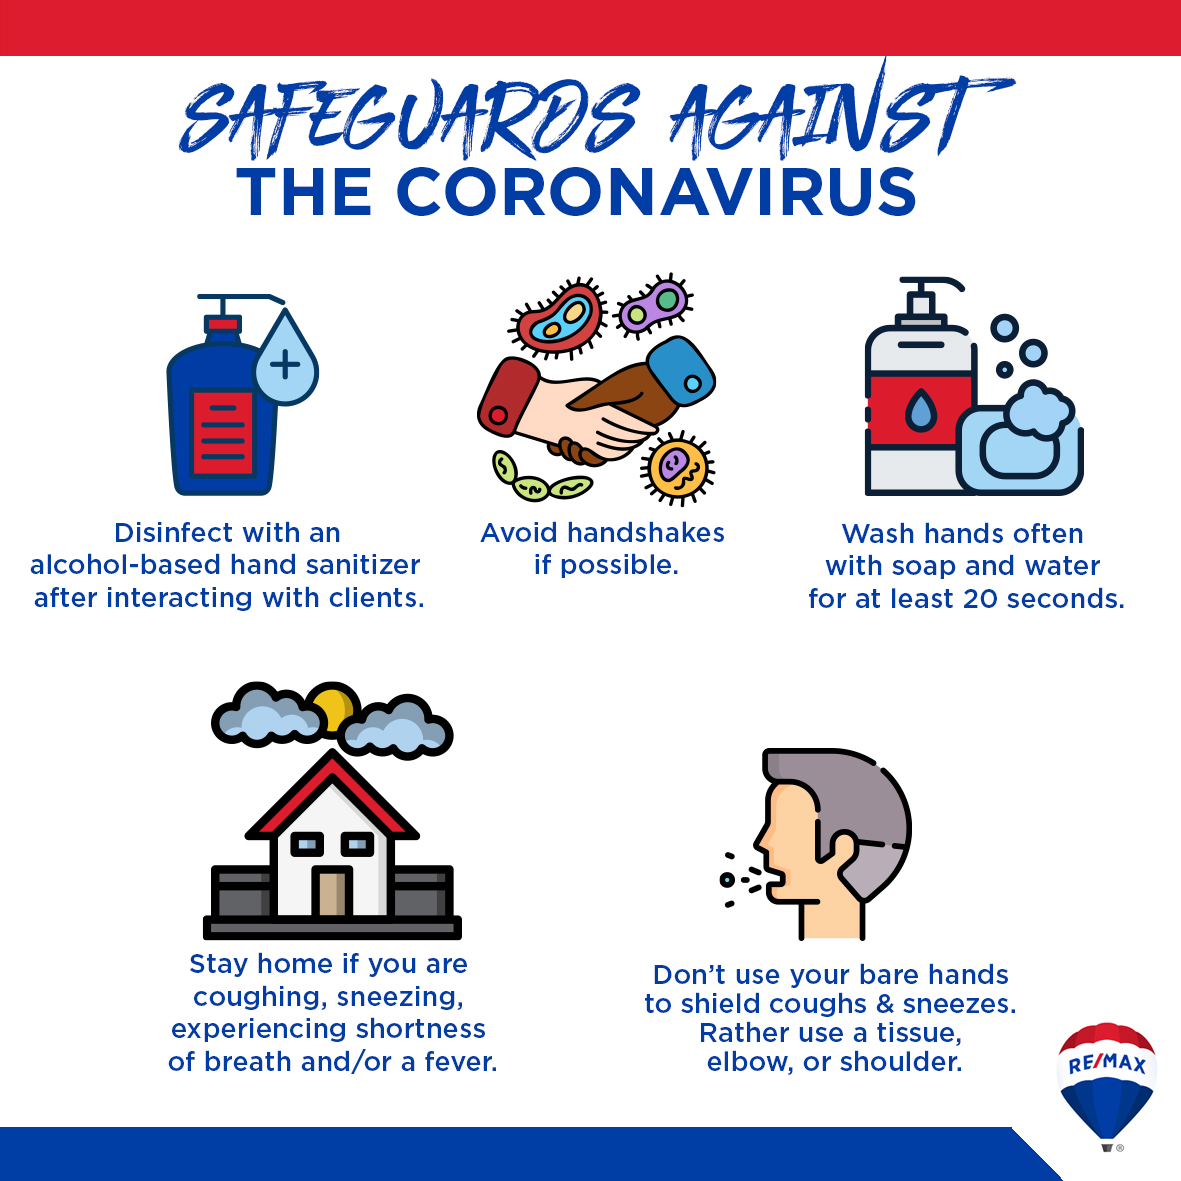 SAFEGUARDS AGAINST THE CORONAVIRUS